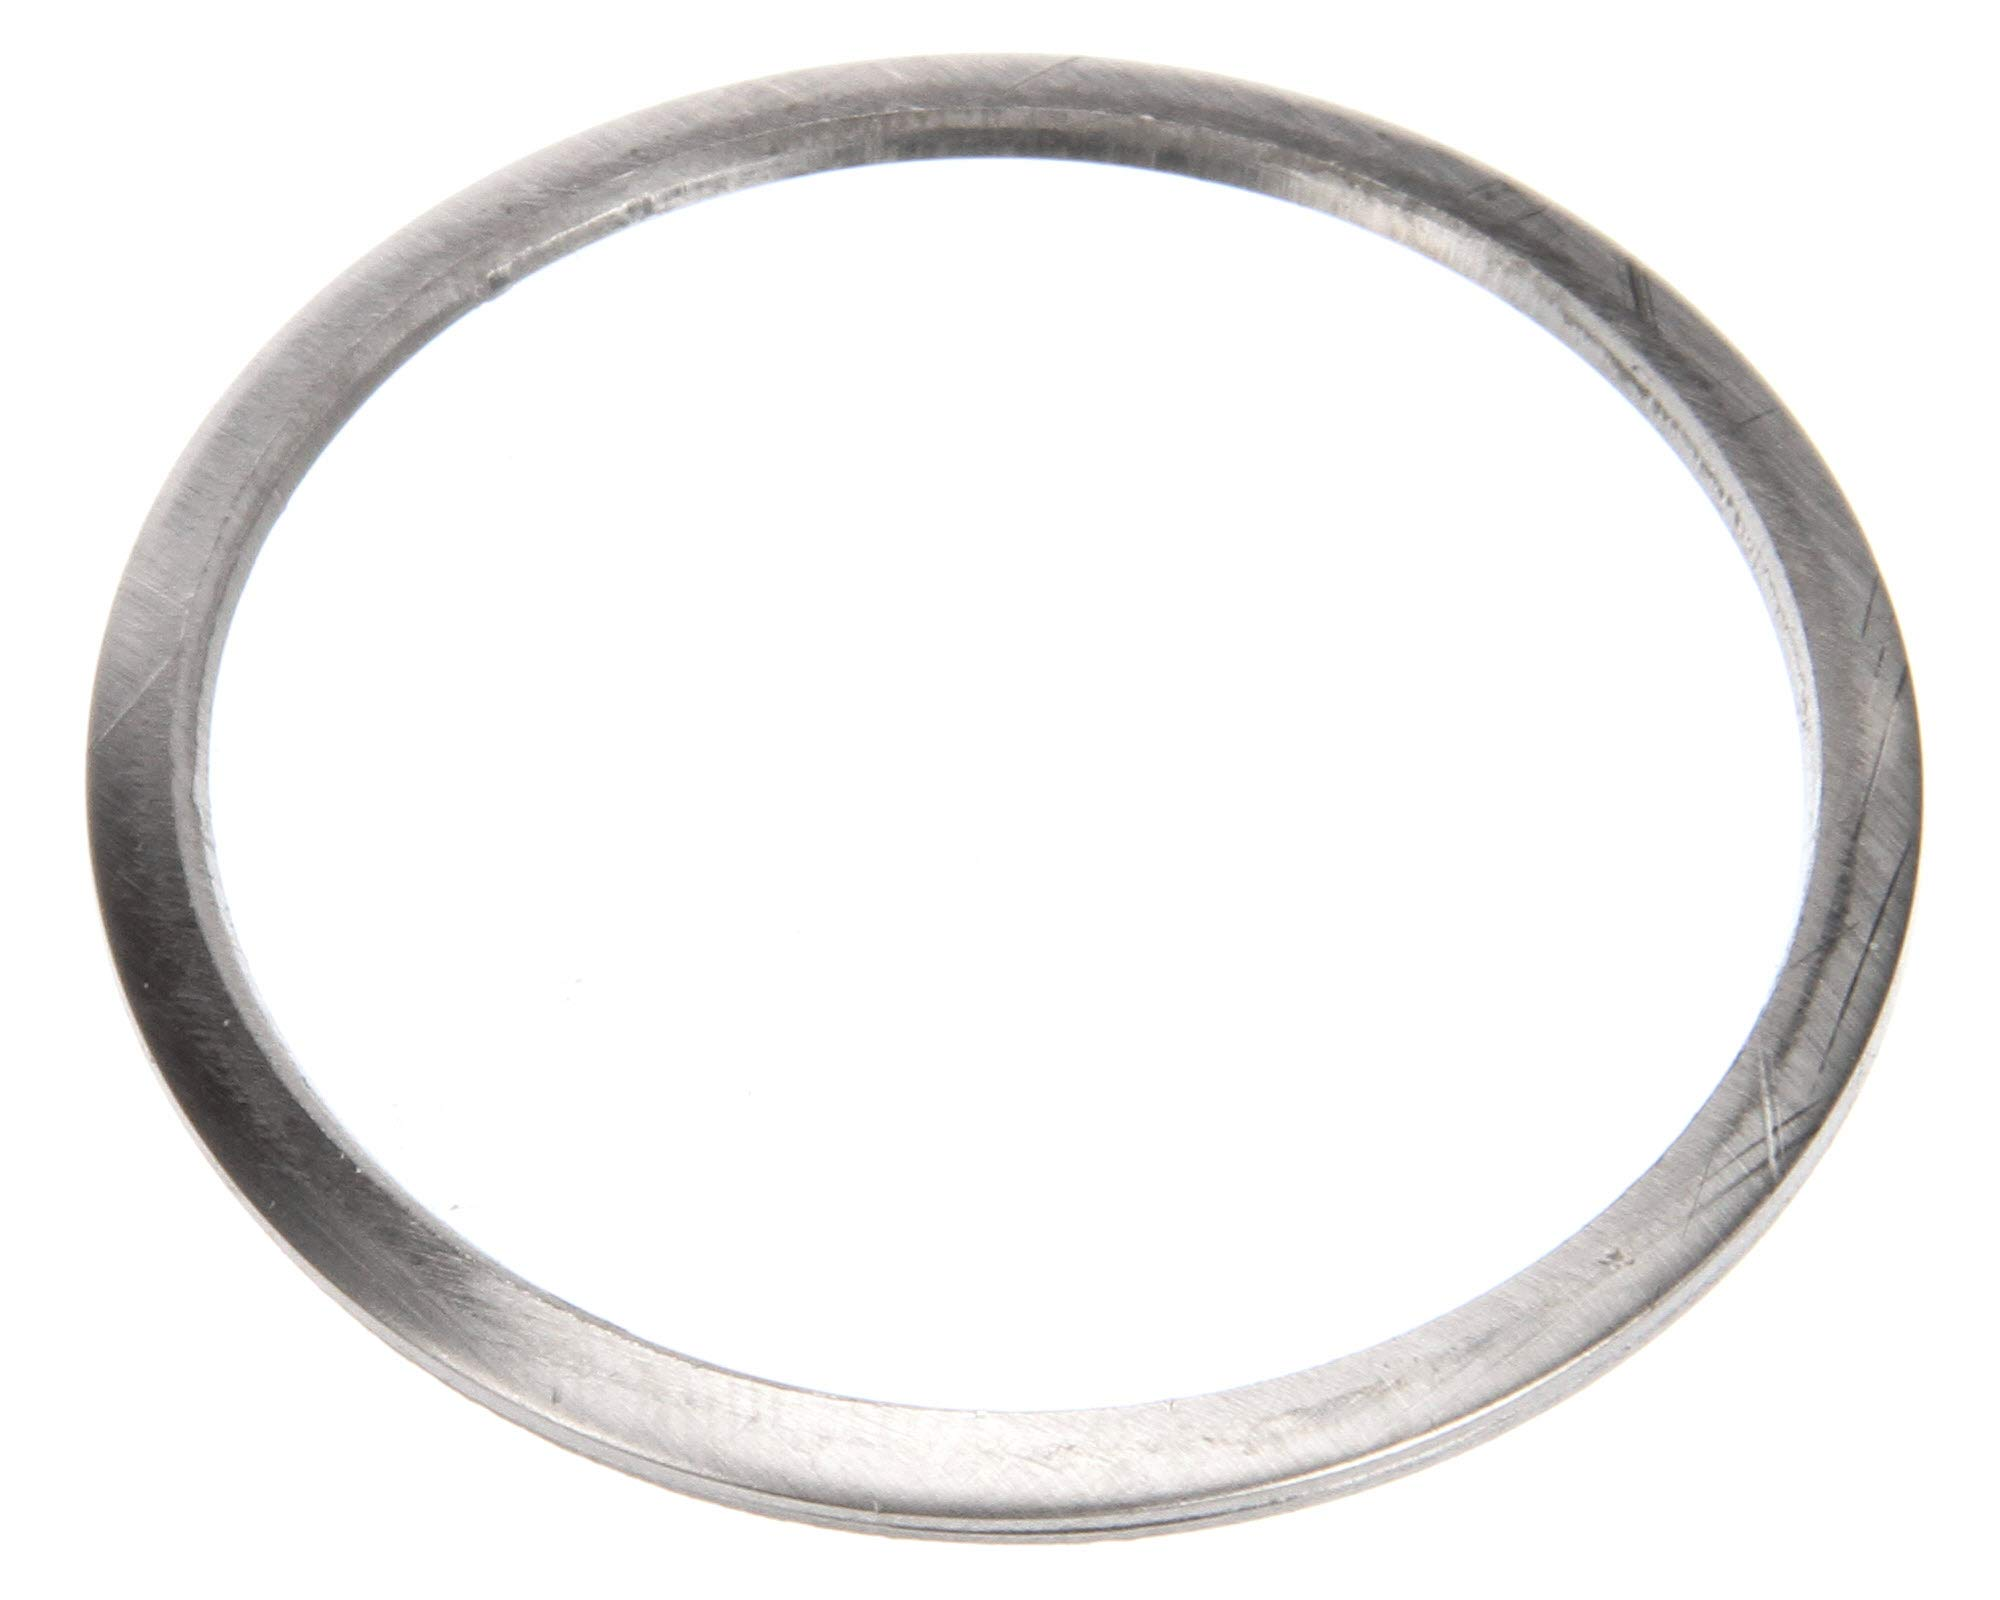 Blakeslee 18646 Plug Retainer Washer 1-1/2 Diameter by Blakeslee